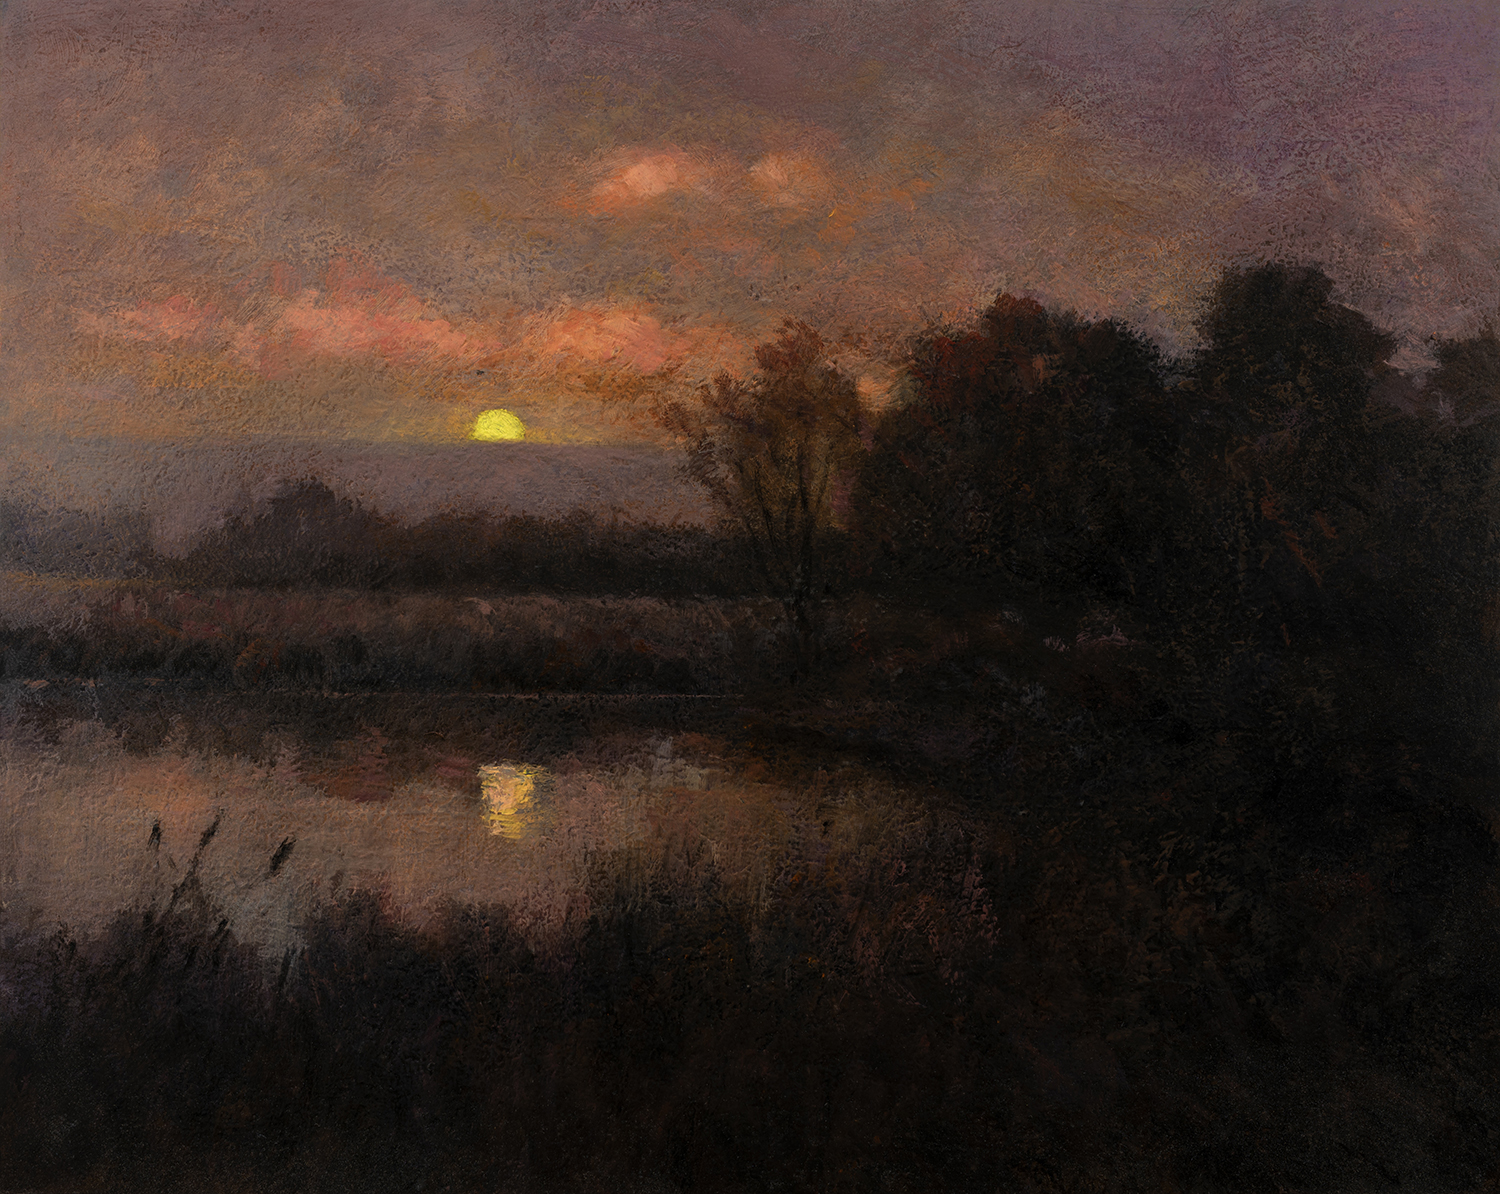 Study after: Edward Wilkins Waite An Autumn Moonrise by M Francis McCarthy - 8x10 Oil on Wood Panel